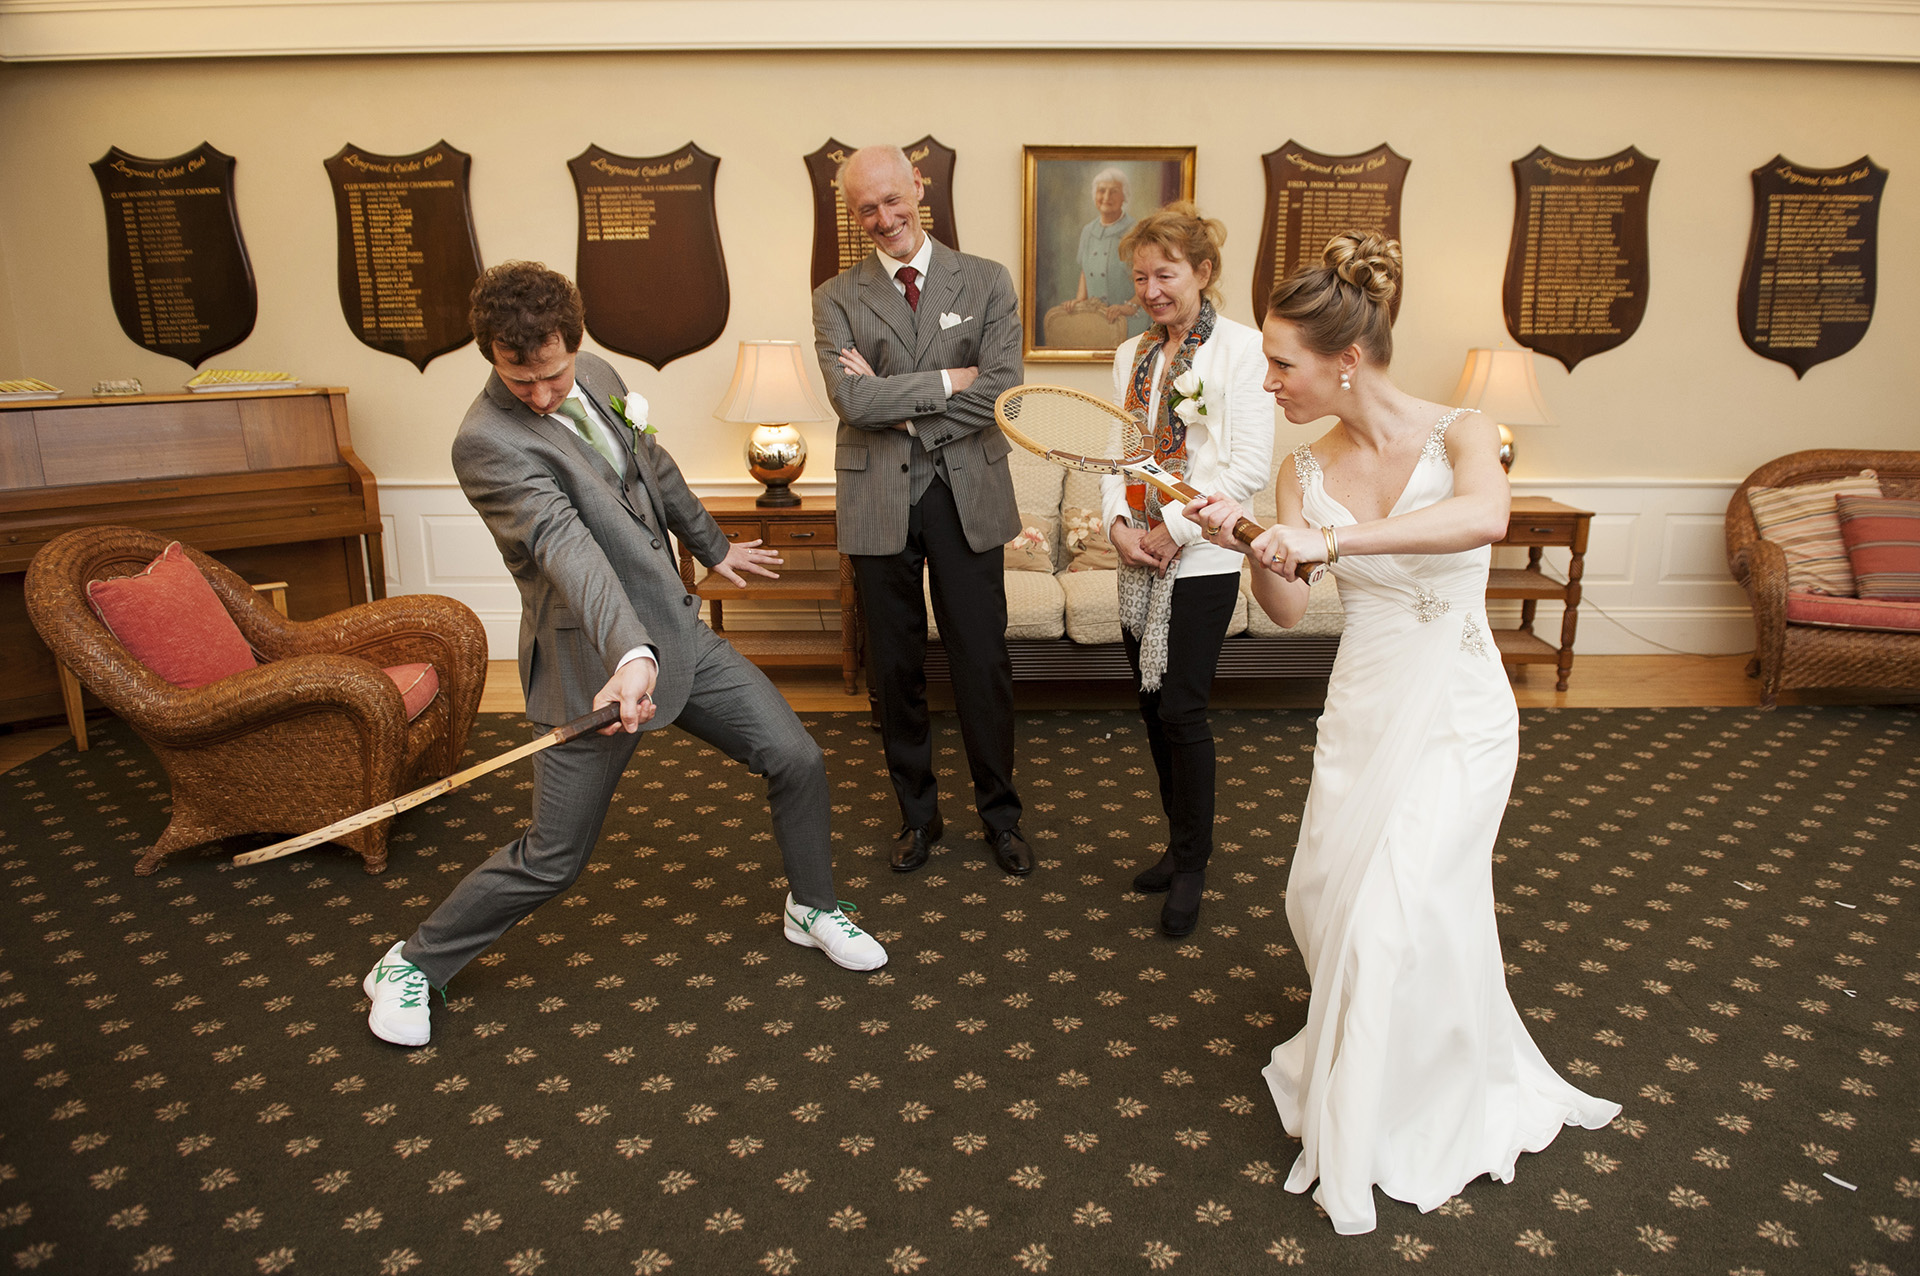 Chestnut Hill, Massachusetts Elopement Picture | The bride and groom show off their tennis skills